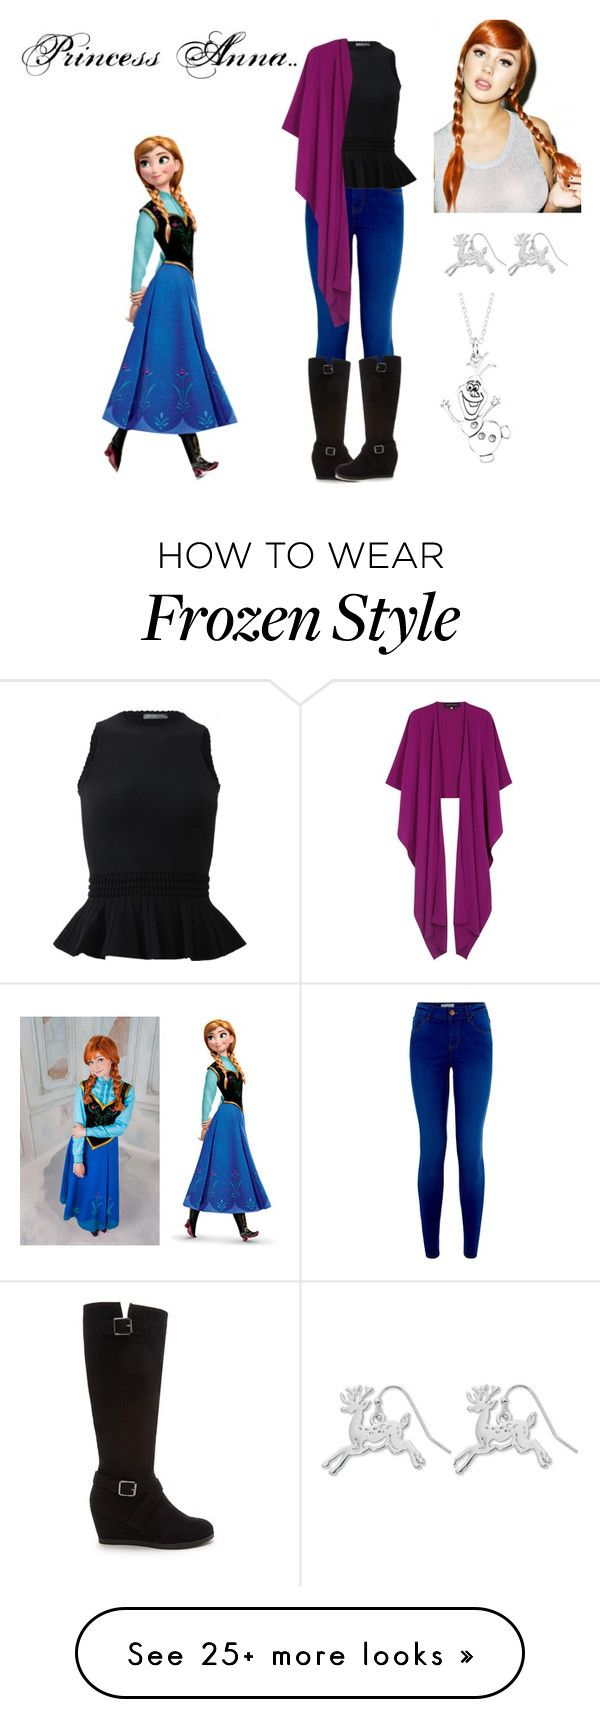 """Modern Day Disney's Anna Outfit"" by marydudich on Polyvore featuring Alexander McQueen, Talbot Runhof, Forever 21, Spree Picky, Kim Rogers, Disney and modern"